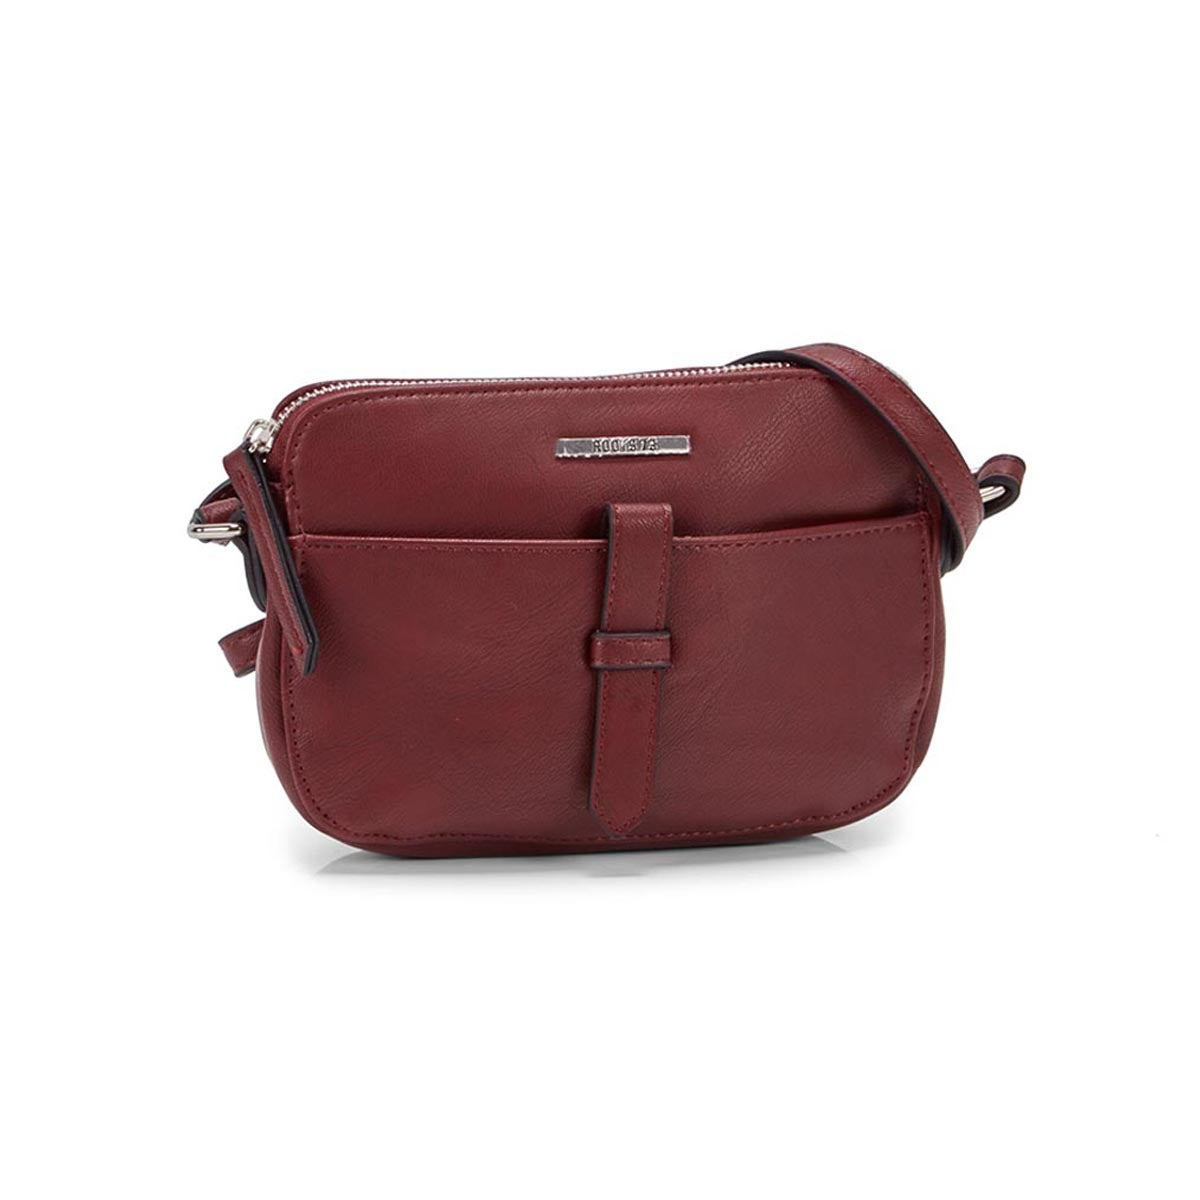 Women's R5356 red mini crossbody bag